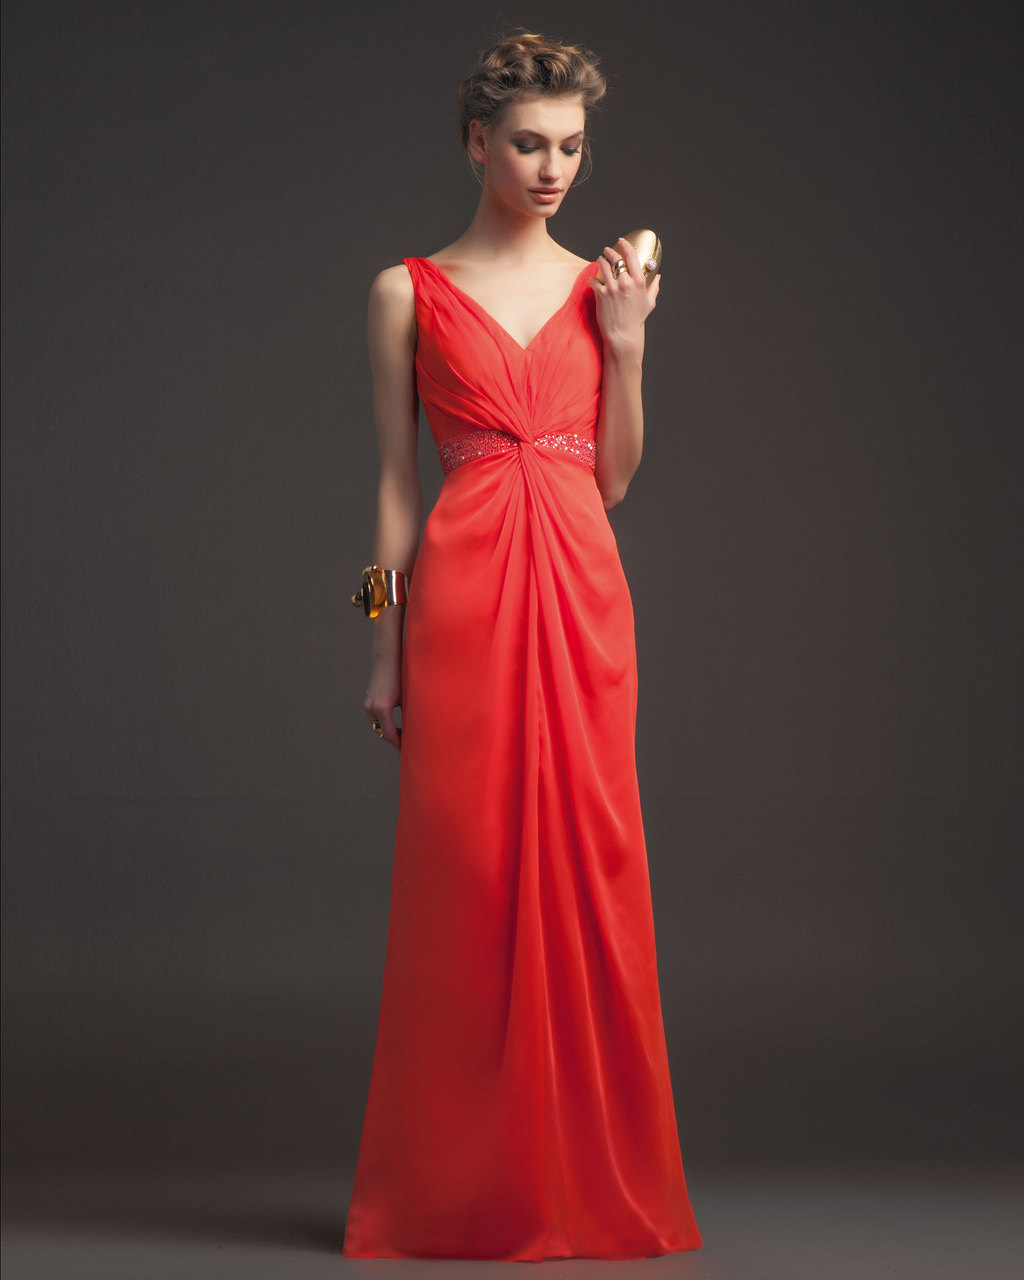 Gorgeous-2014-bridesmaid-dresses-from-aire-barcelona-bright-coral-v-neck.full